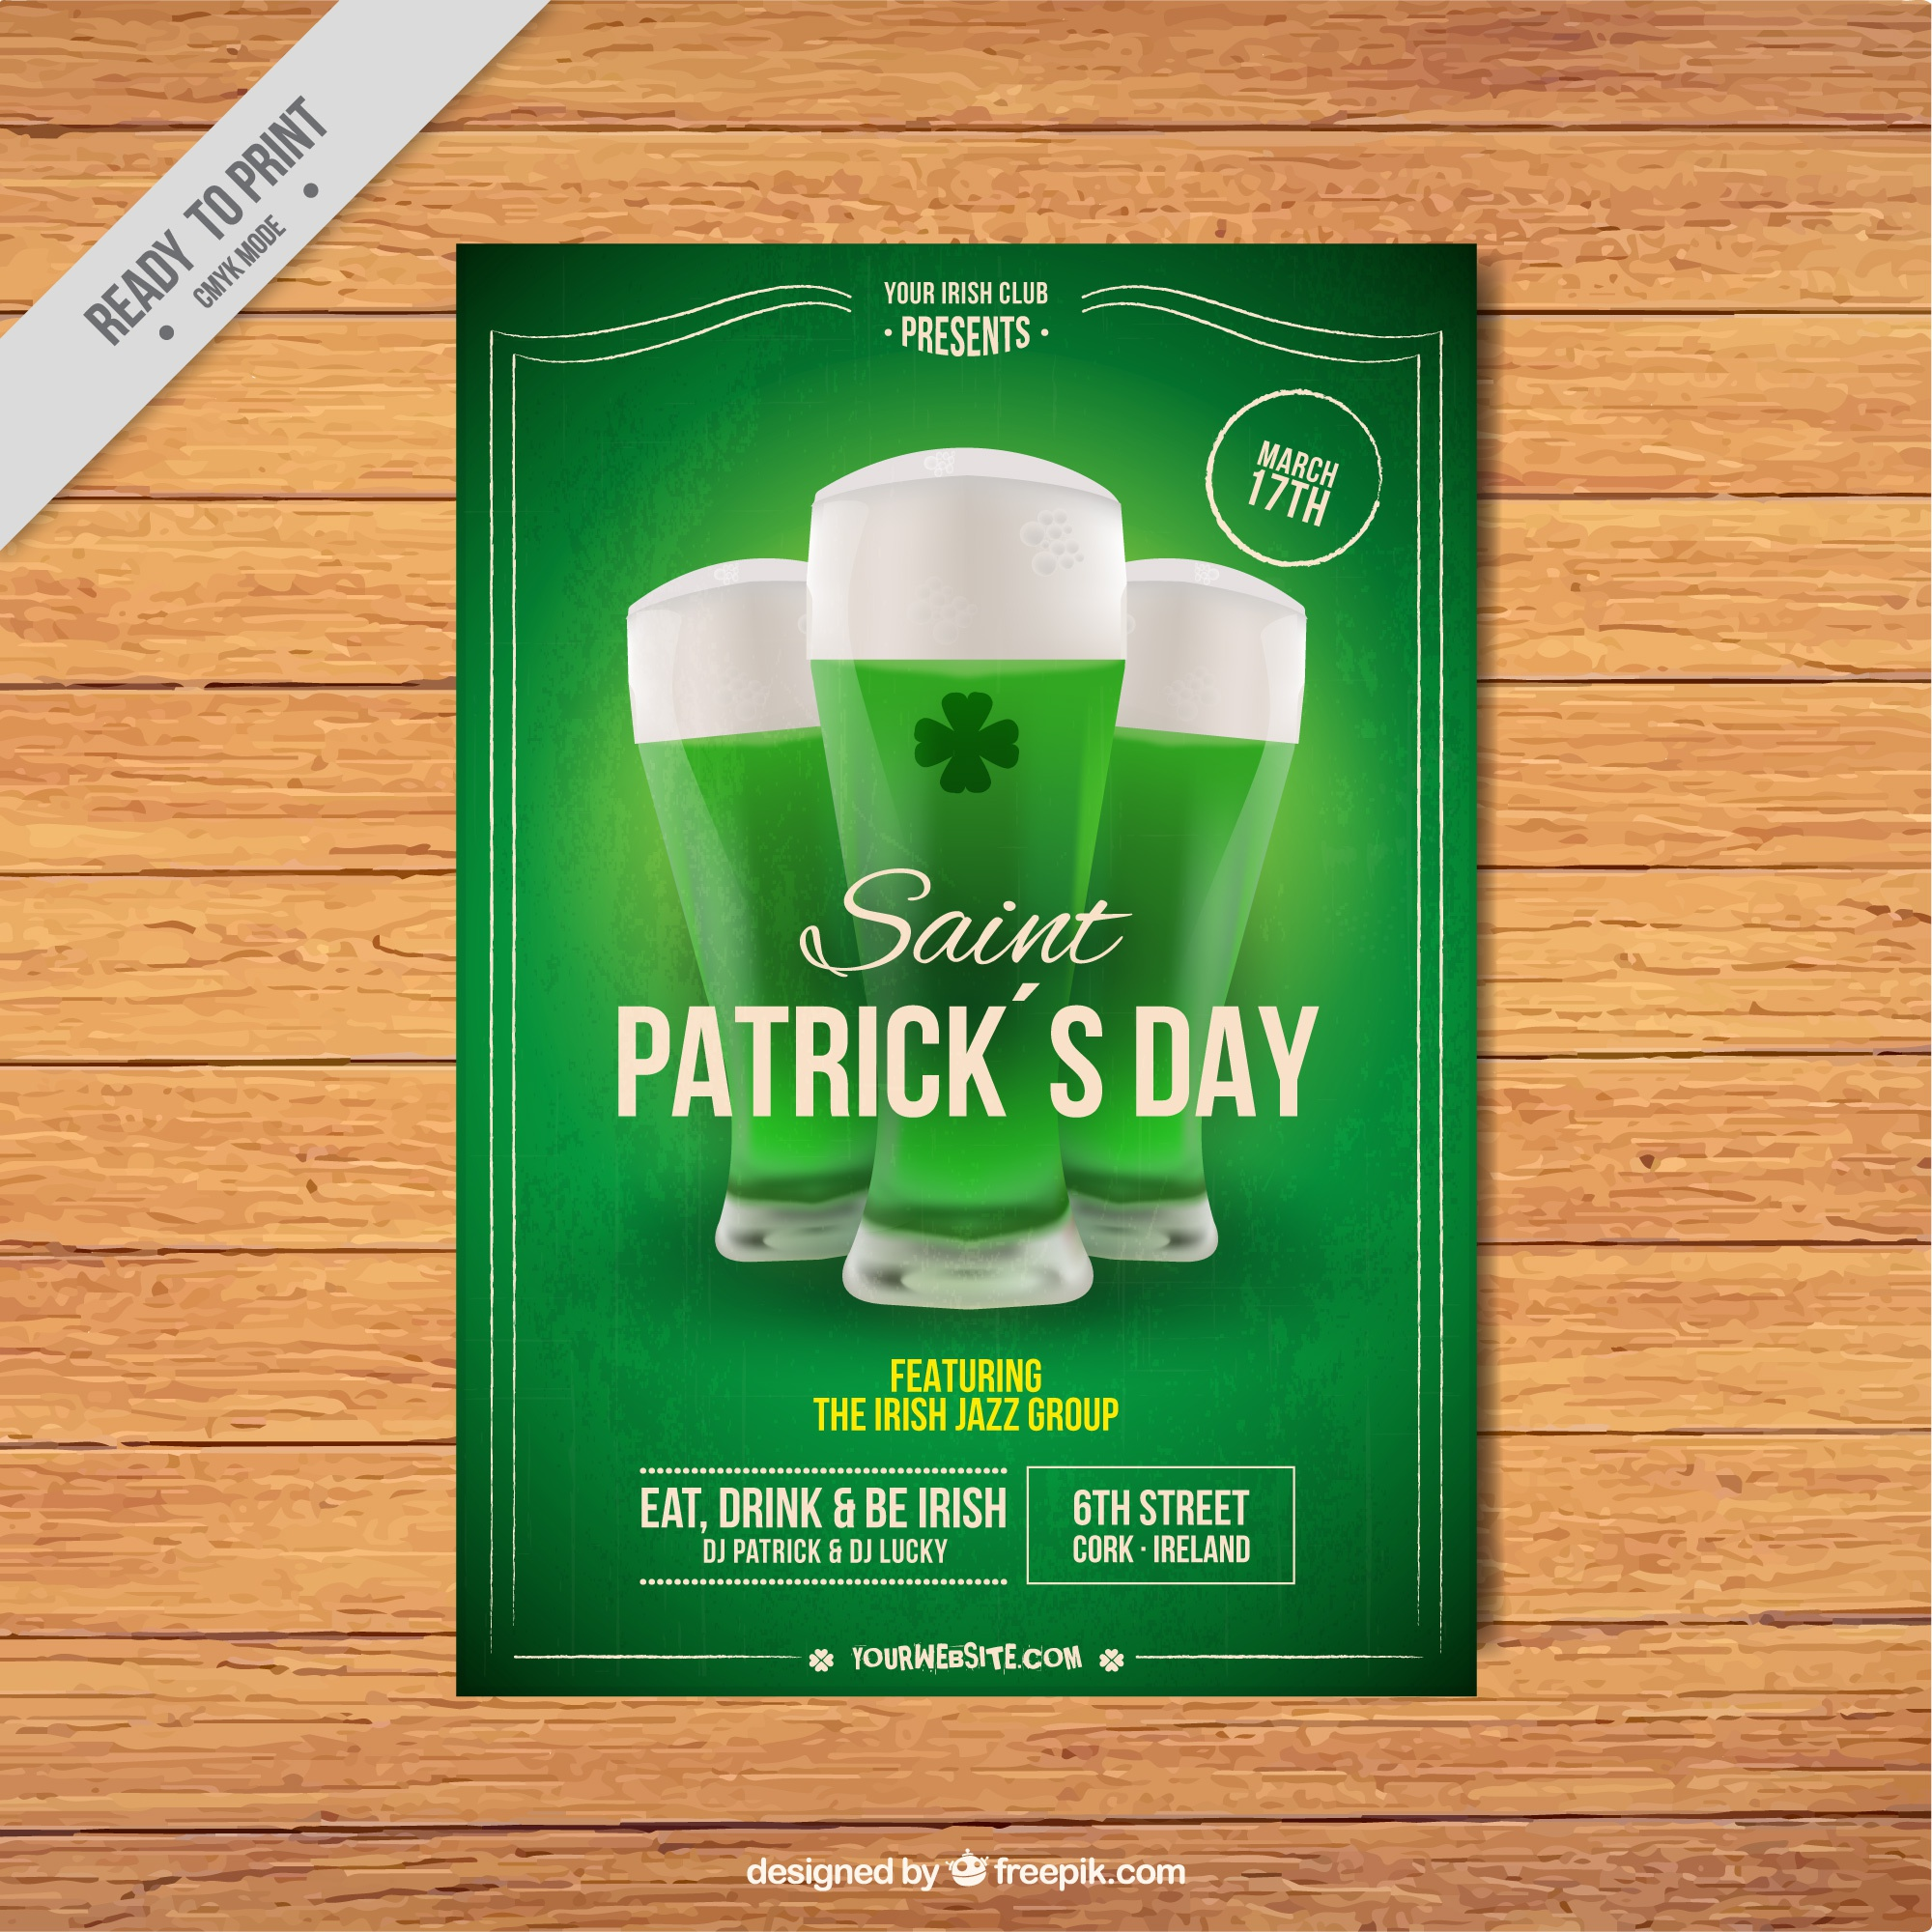 Green patrick's day leaflet